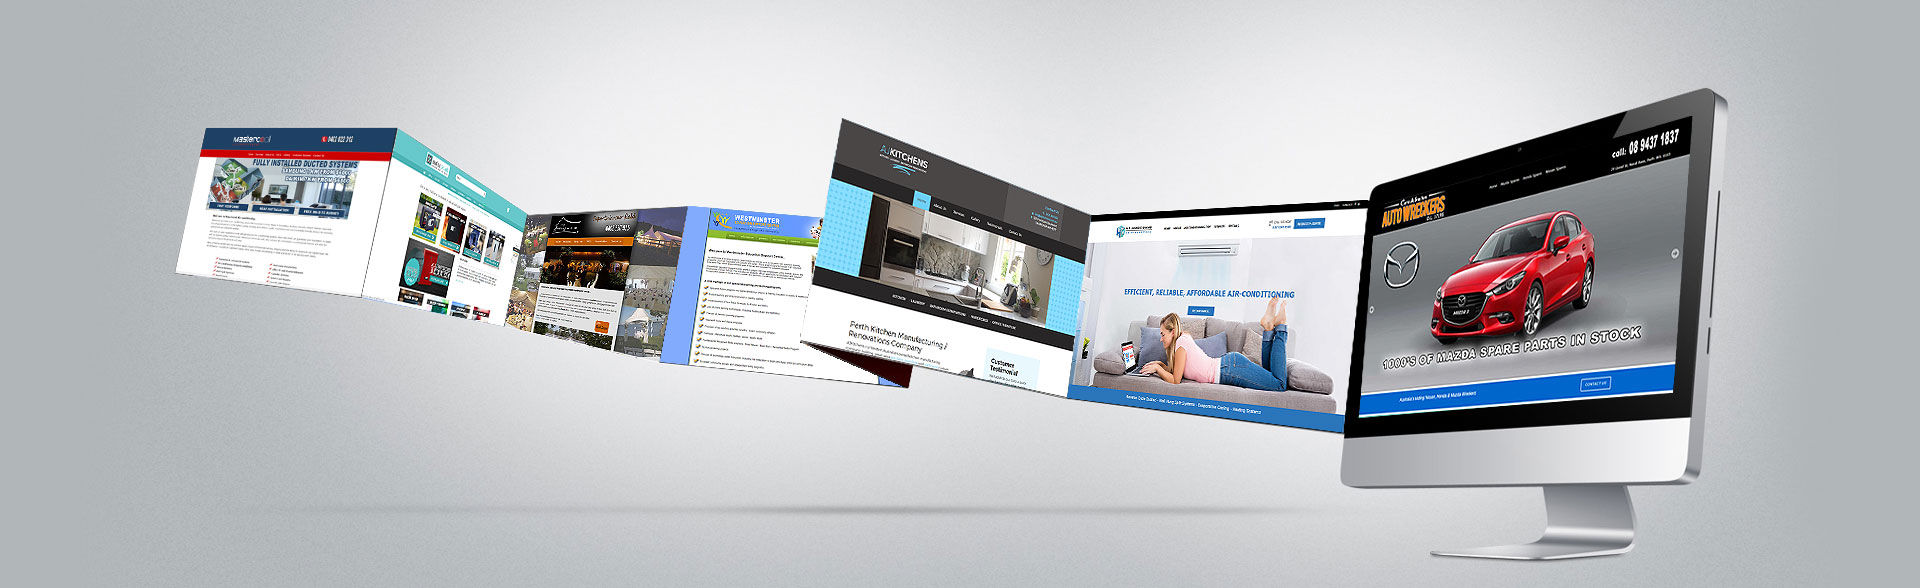 Web Design Perth Web Site Design In Perth Wa Australia Quality Budget Websites